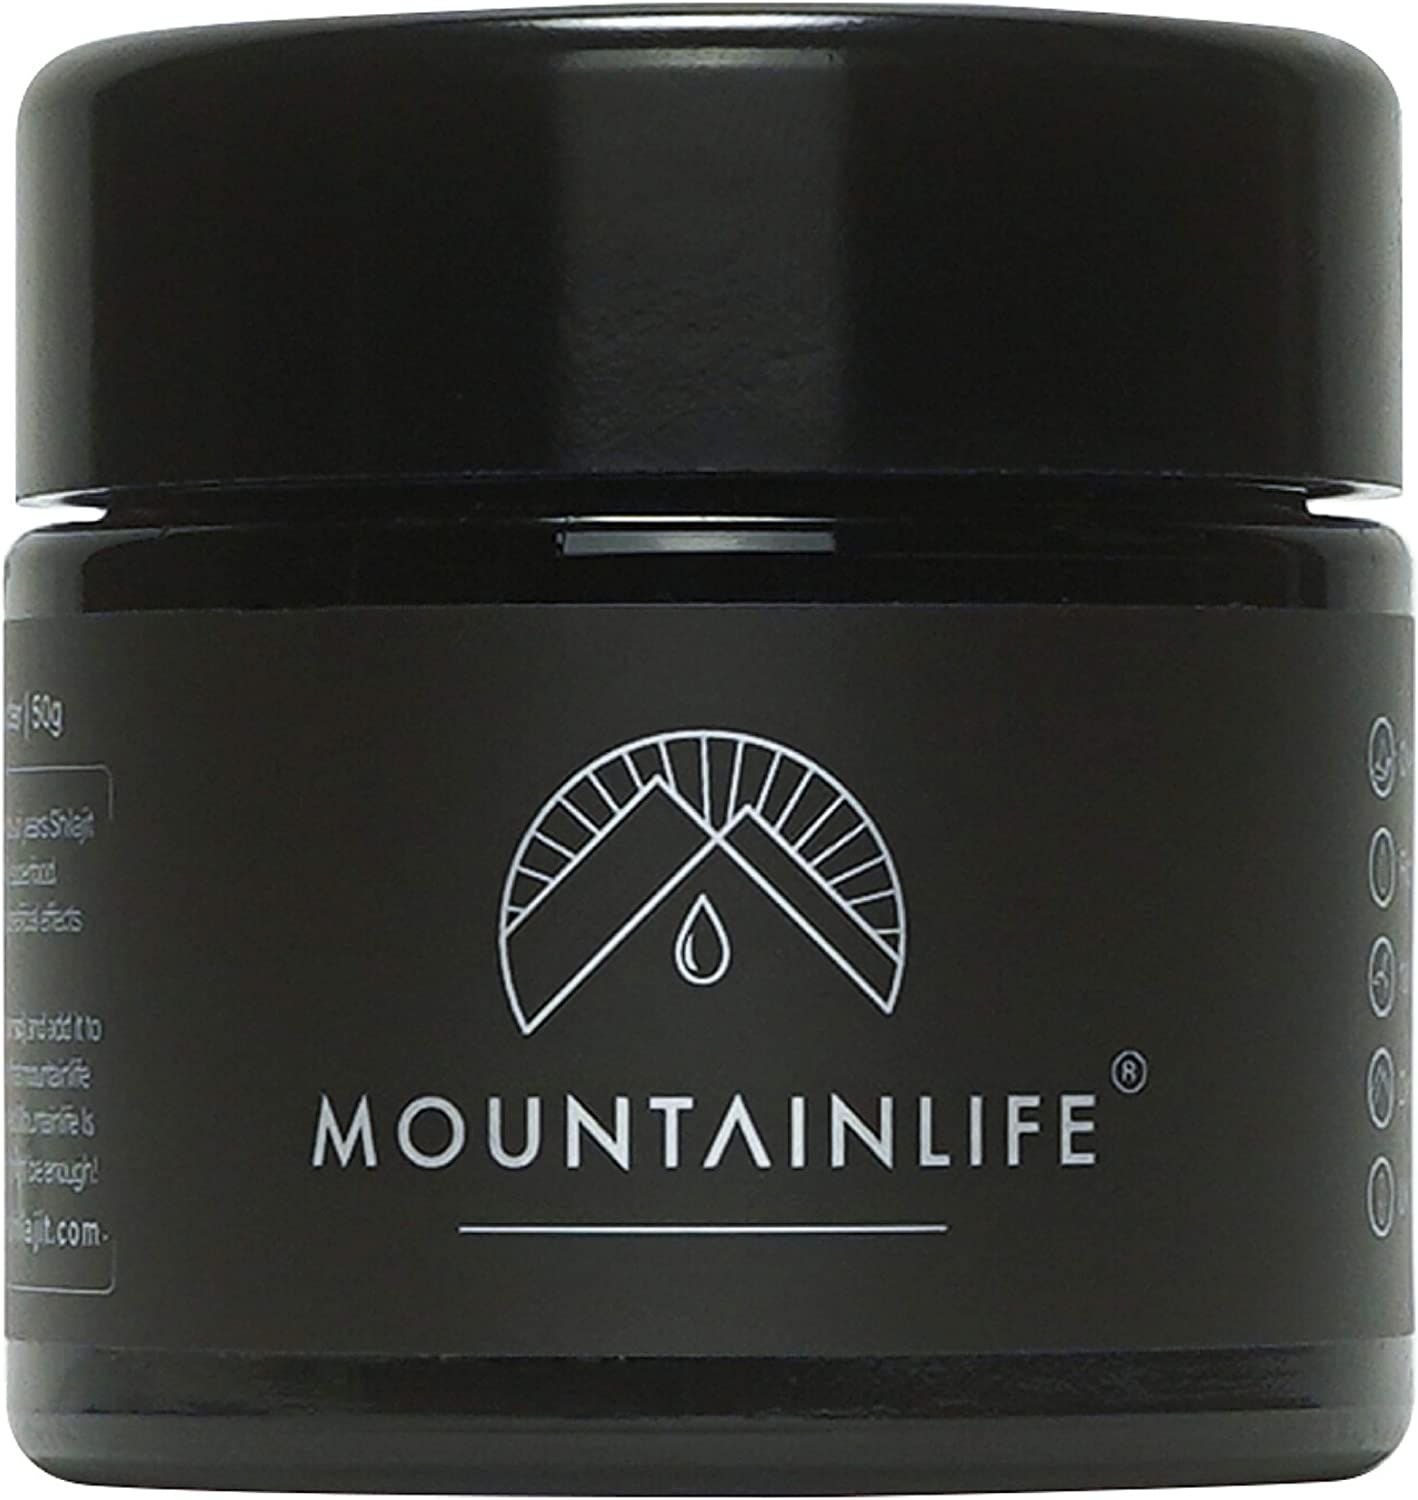 Mountainlife Natural Shilajit Resin | UK Lab Tested | 100g - 10 Month Supply | Vegan Accredited | Herbal & Mineral Superfood | Miron UV Protected | Rich in Fulvic & Amino Acids, Minerals, Vitamins